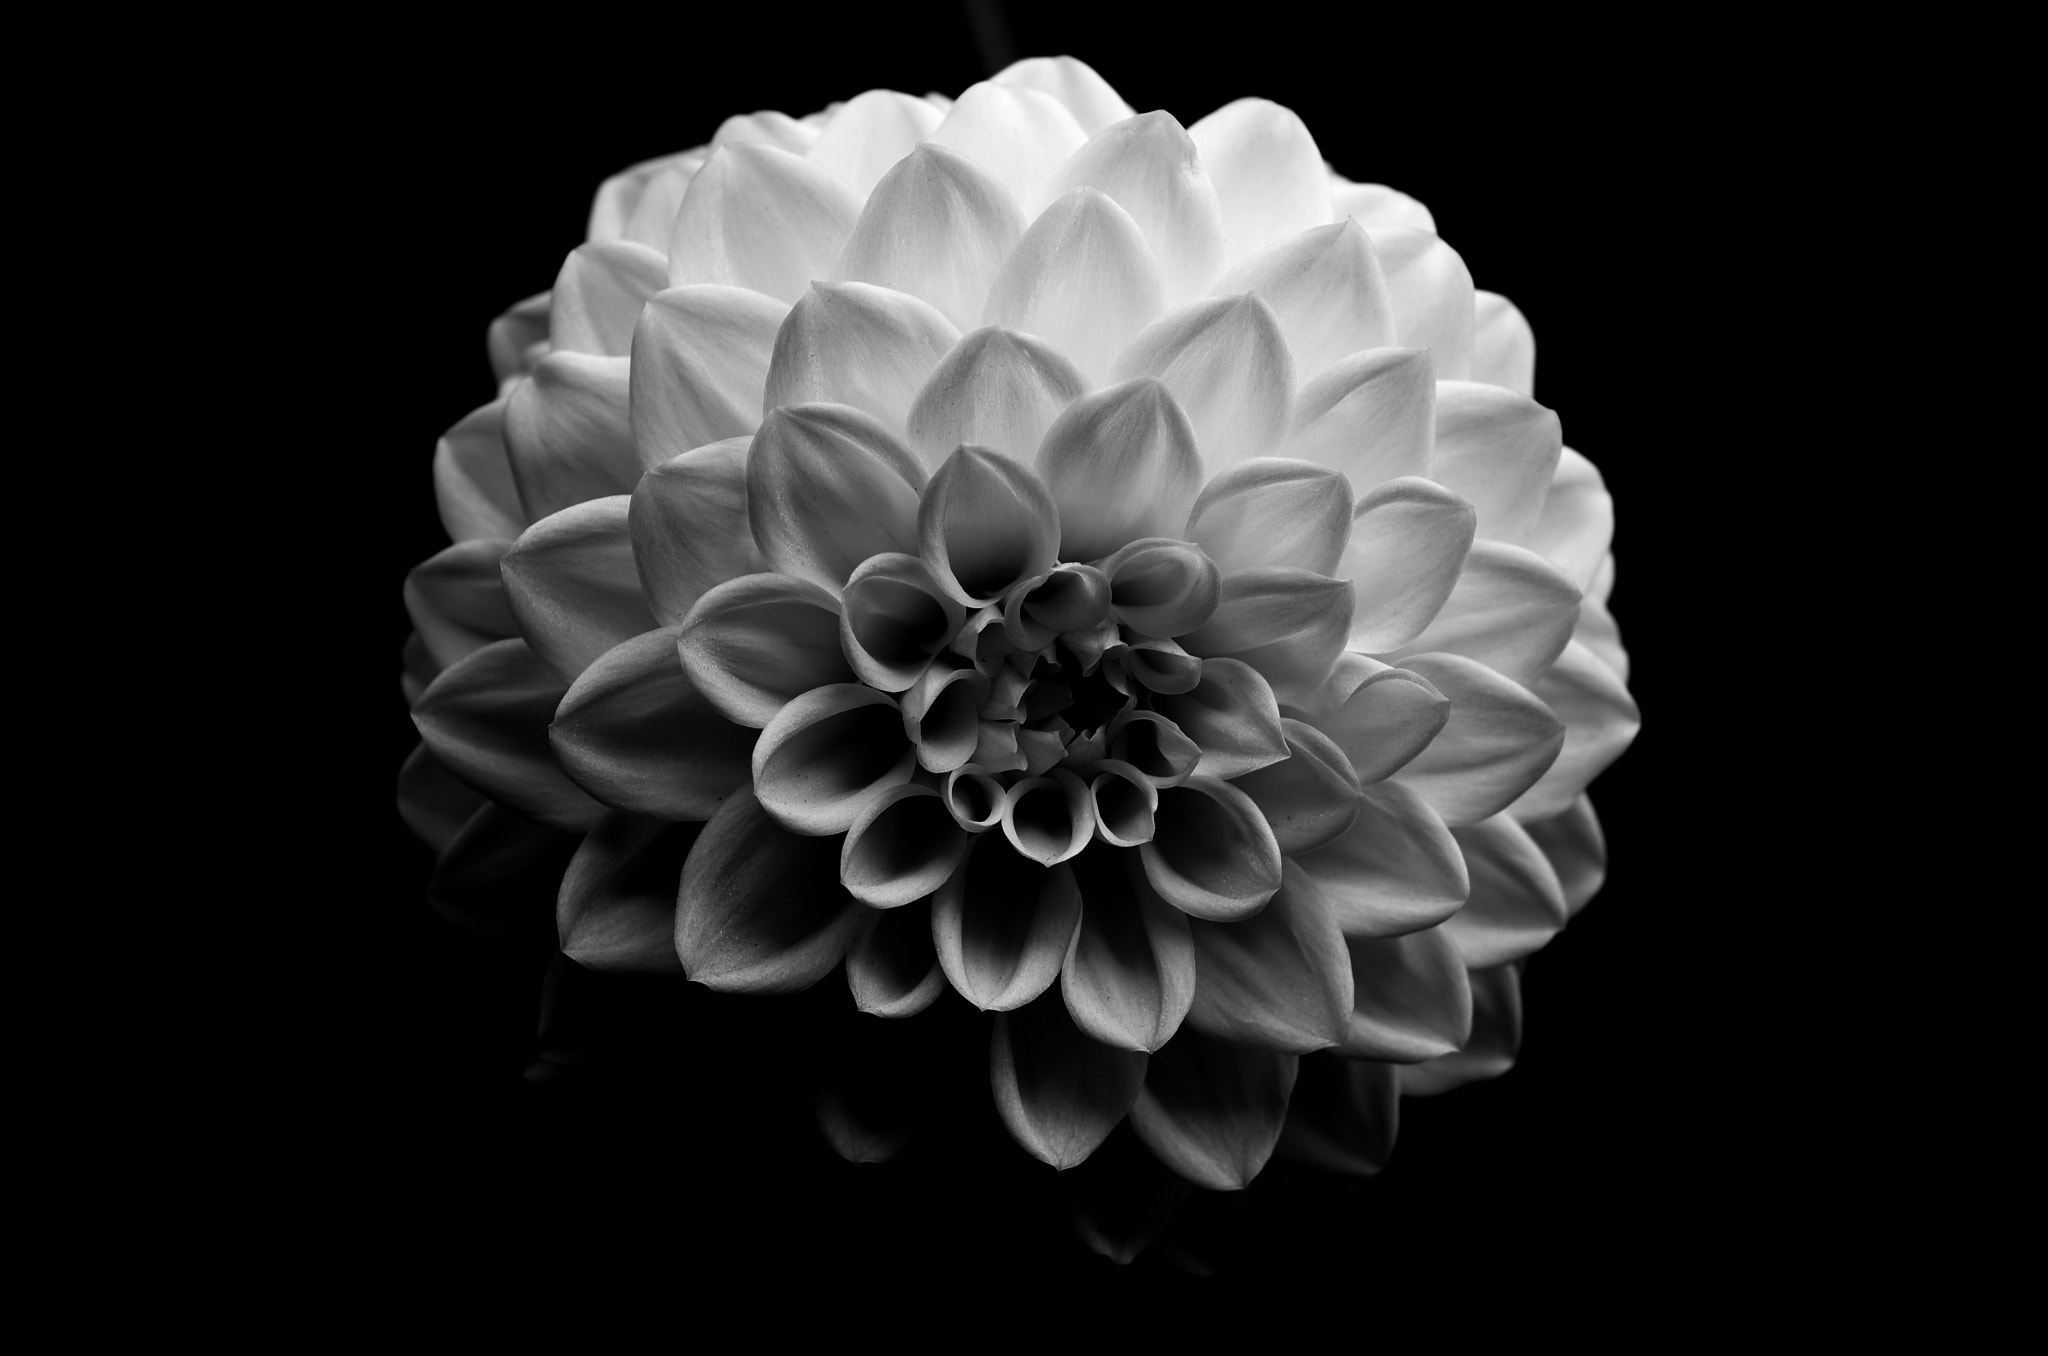 Photograph Dahlia by pon0927 on 500px